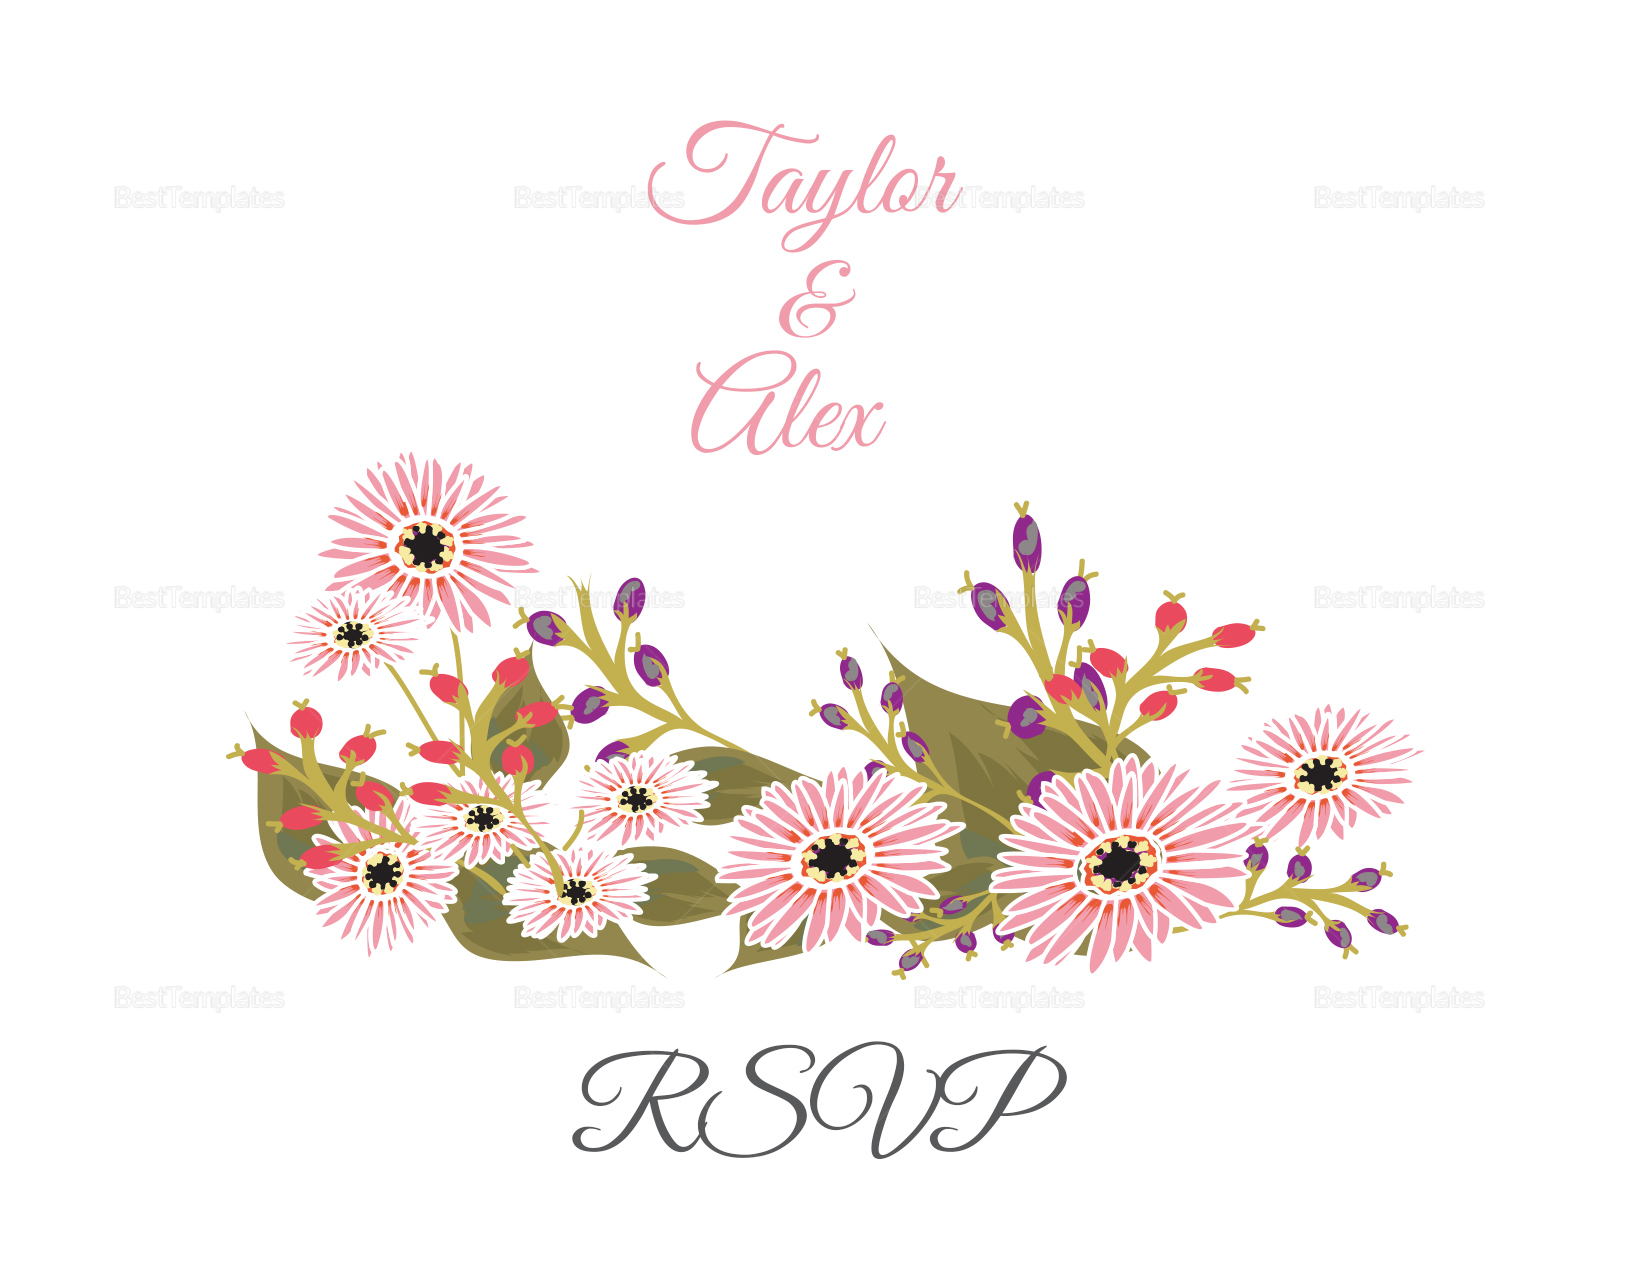 Floral Wedding RSVP Card Design Template